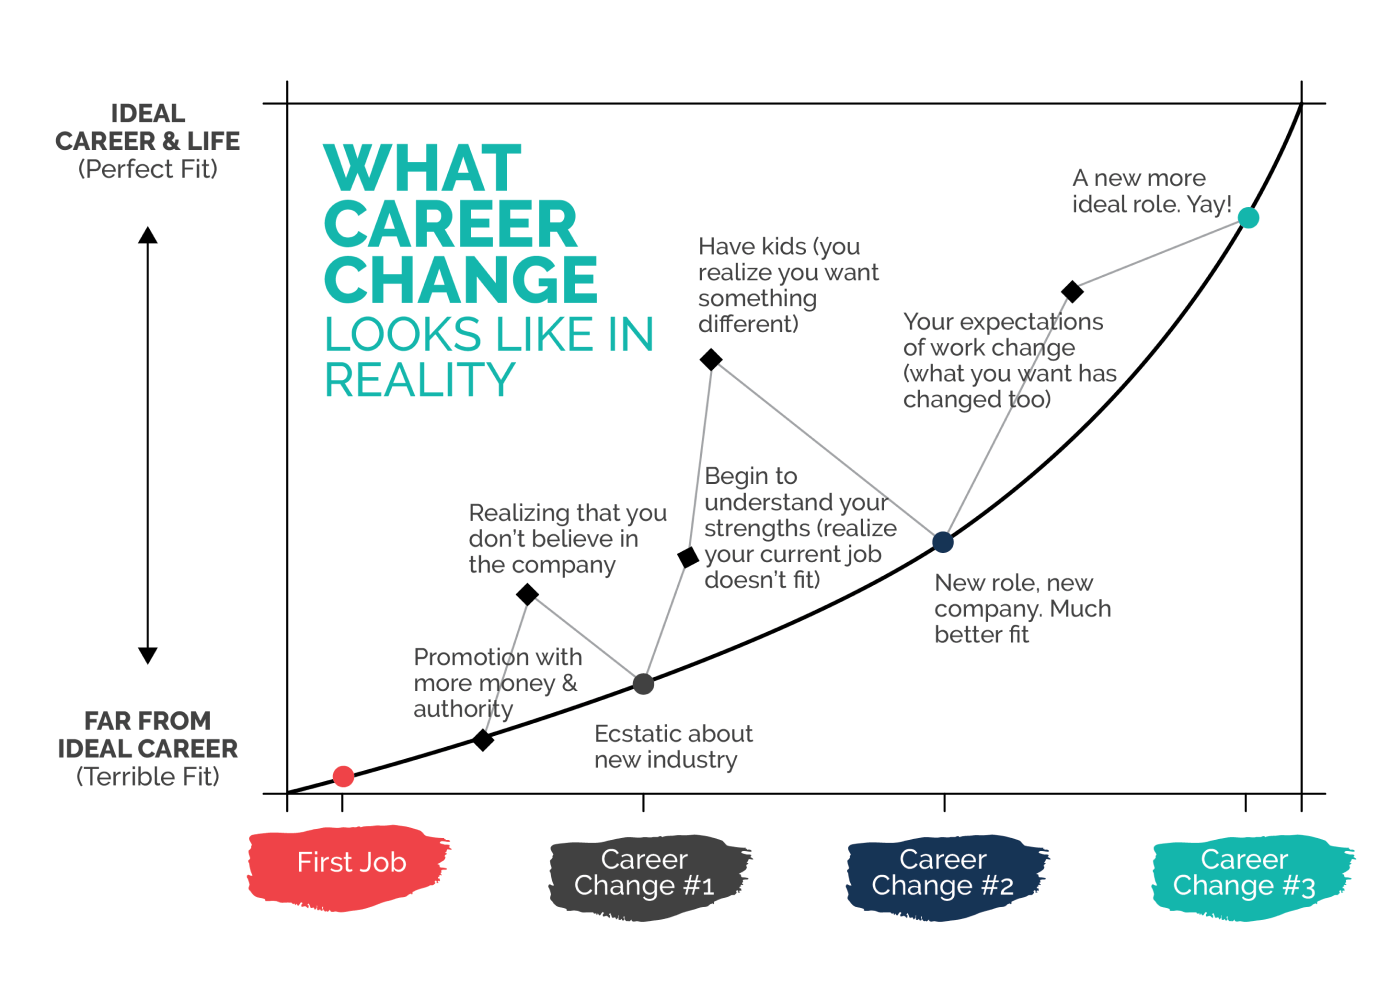 Refine your career change and ideal career